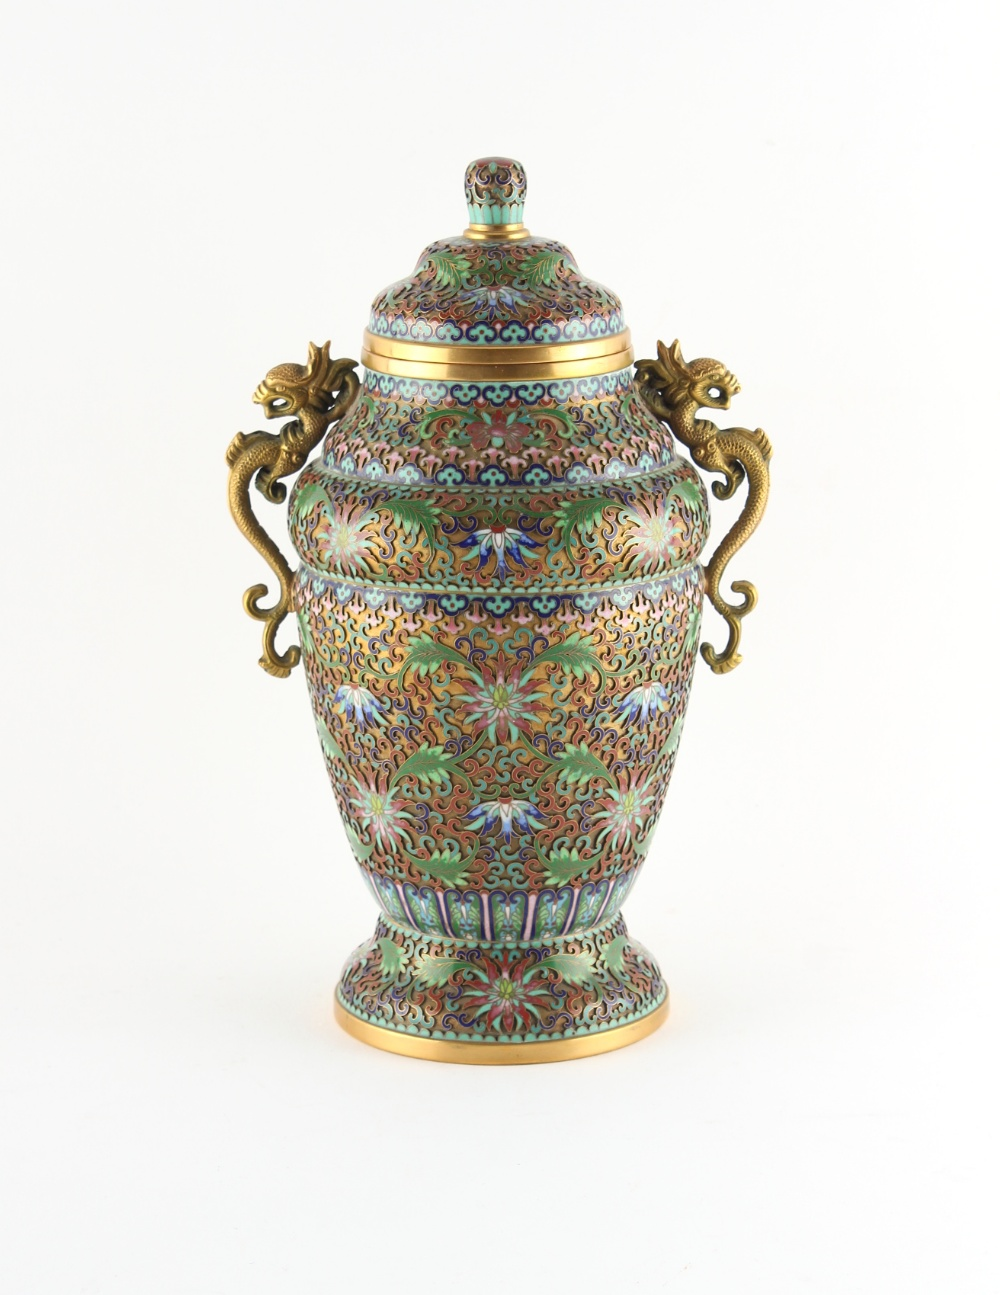 Property of a deceased estate - a Chinese champleve cloisonne vase & cover, 20th century, with